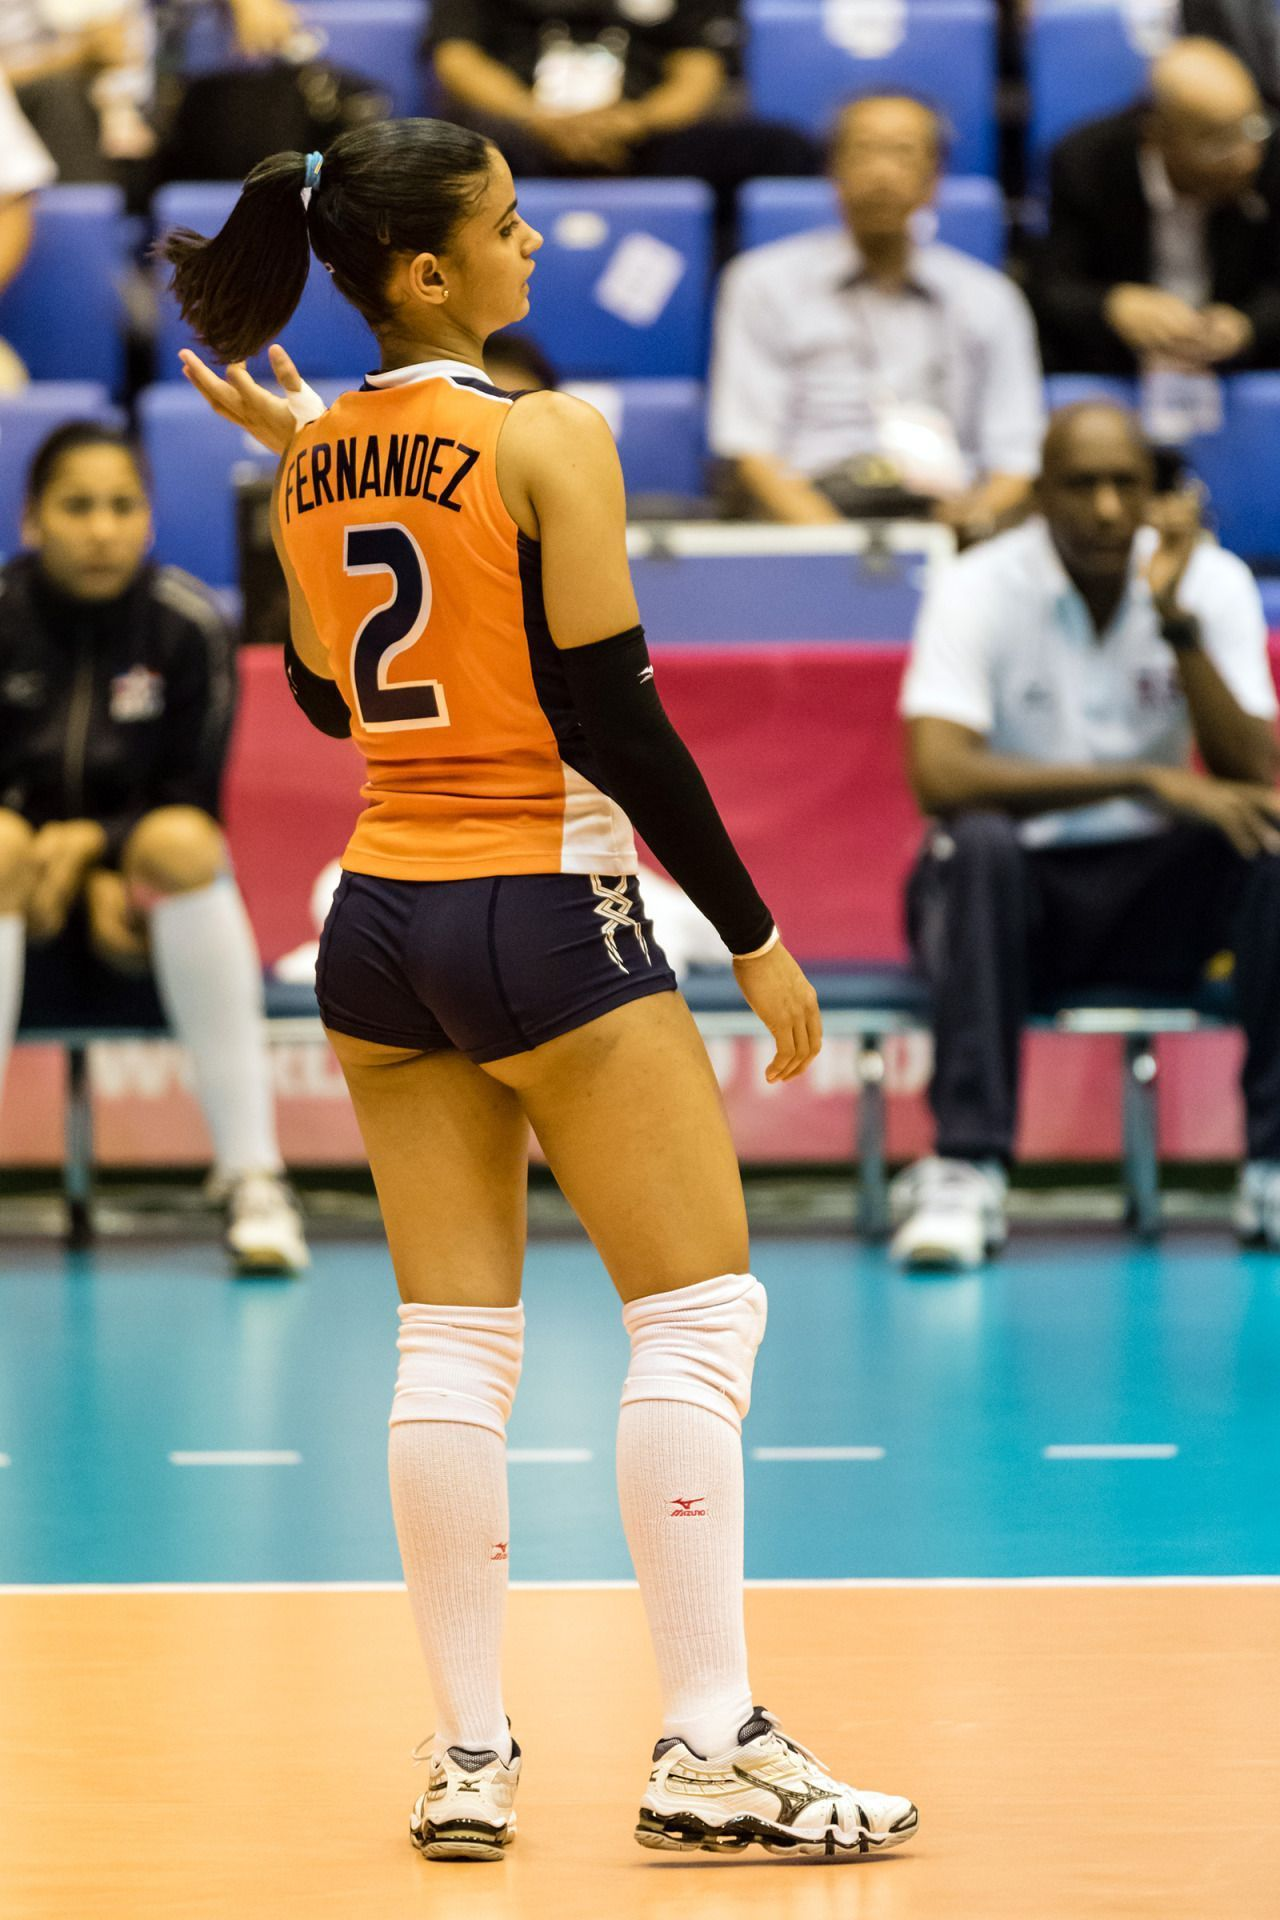 Nootsara Tomkom S Magic Touch L World S Best Setter Volleyball Quotes Volleyball Positions Volleyball